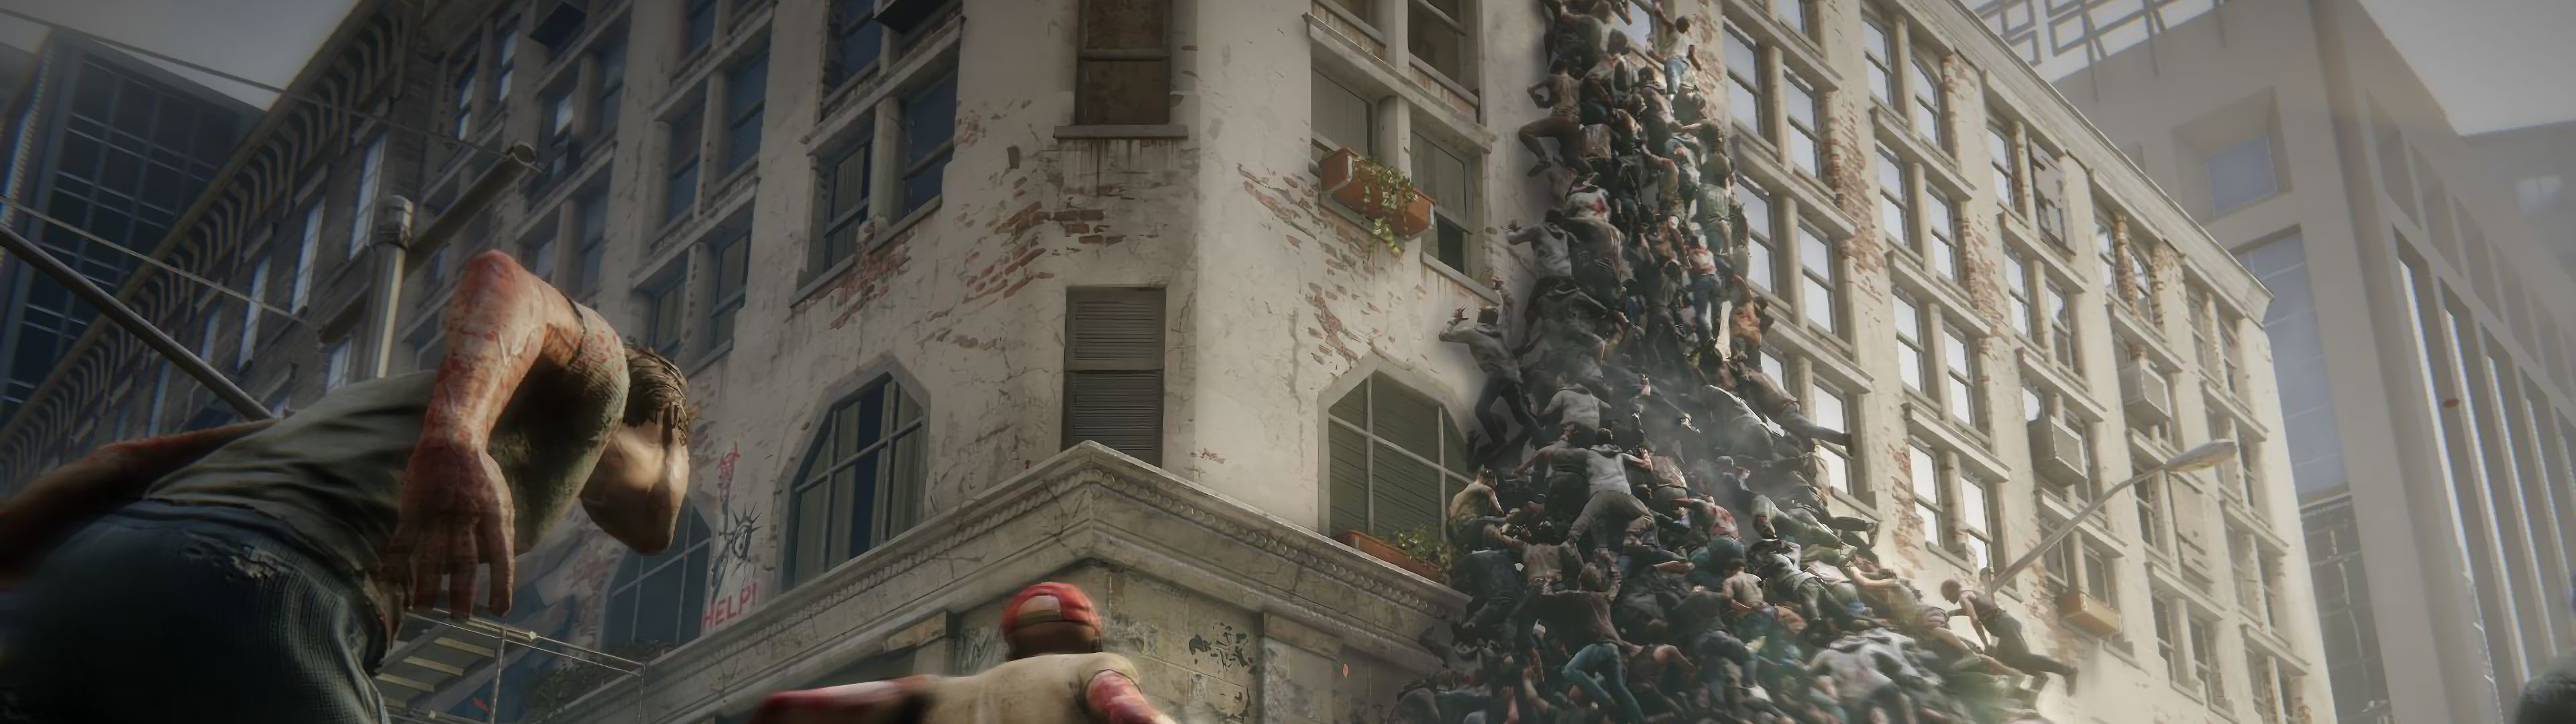 World War Z Zombie Hordes Game 4k Wallpaper 2